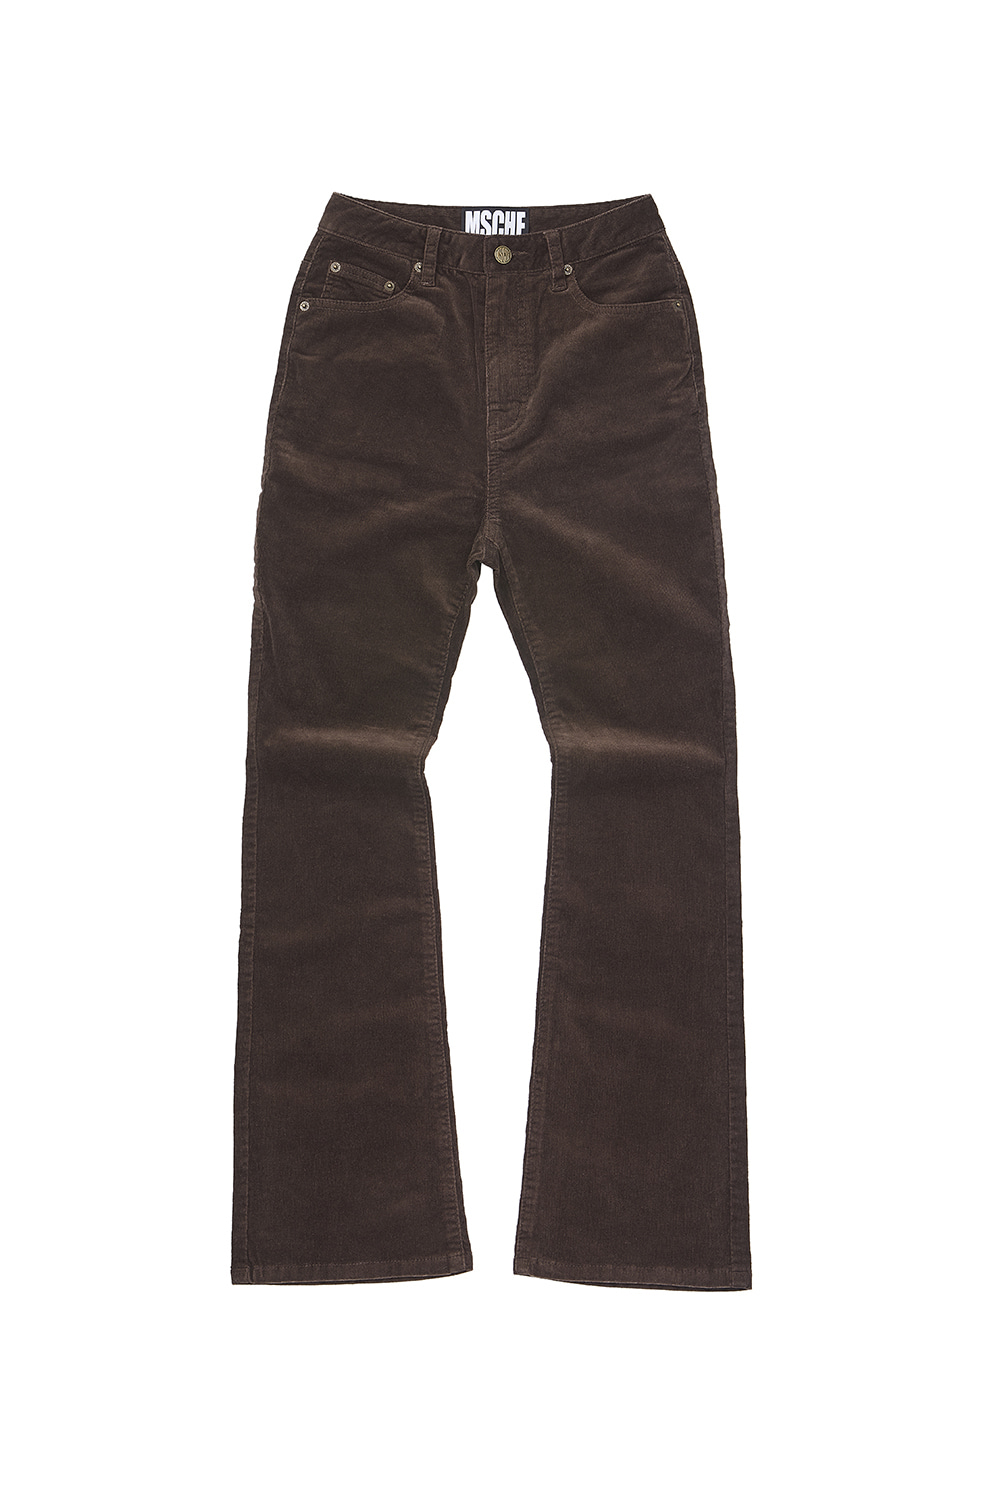 CORDUROY BOOT CUT PANTS_brown